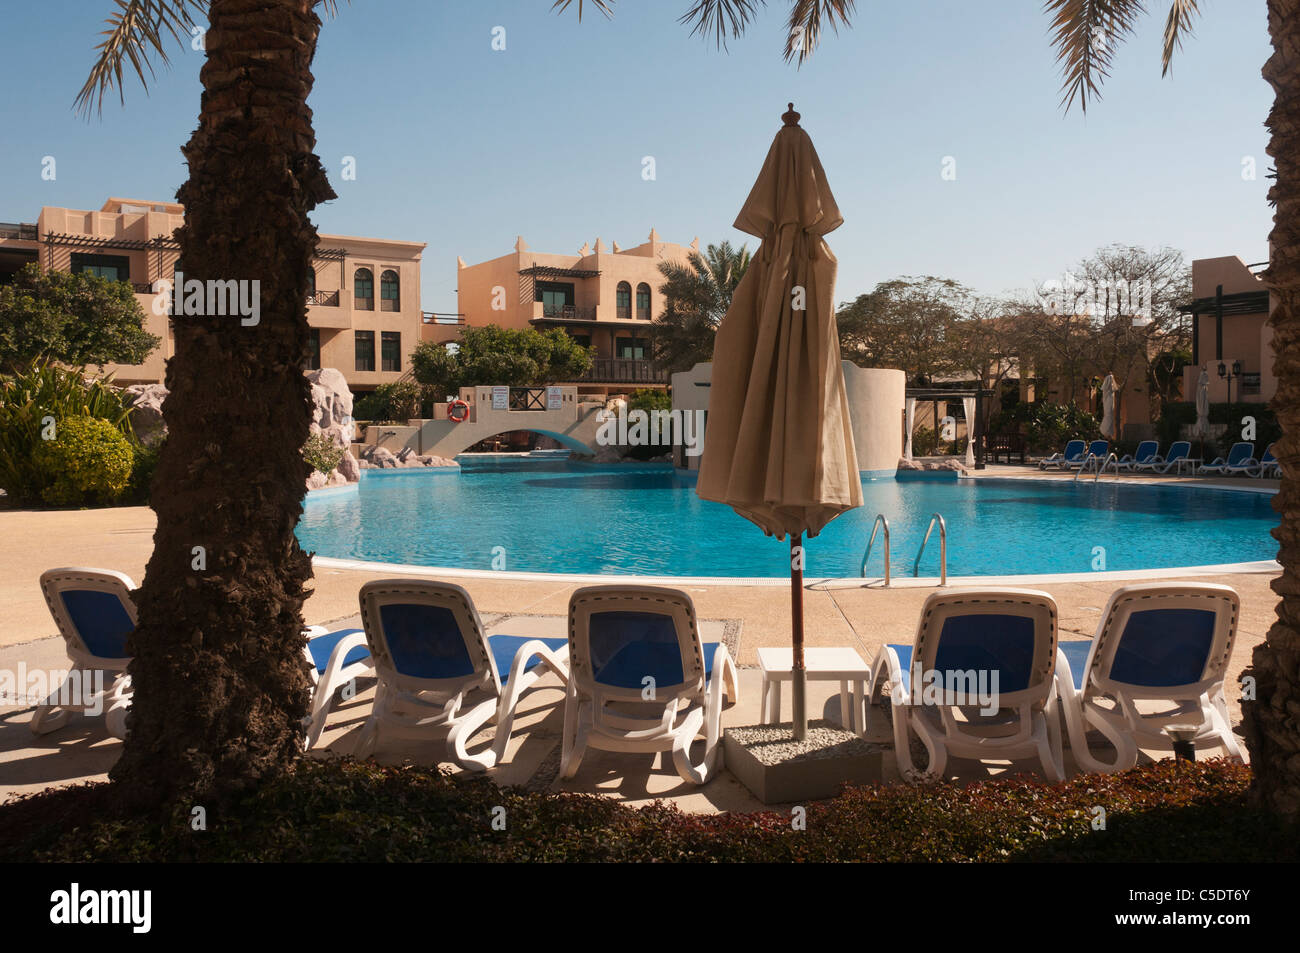 Elk204-1228 Bahrain, Manama, Sofitel hotel with pool Stock Photo